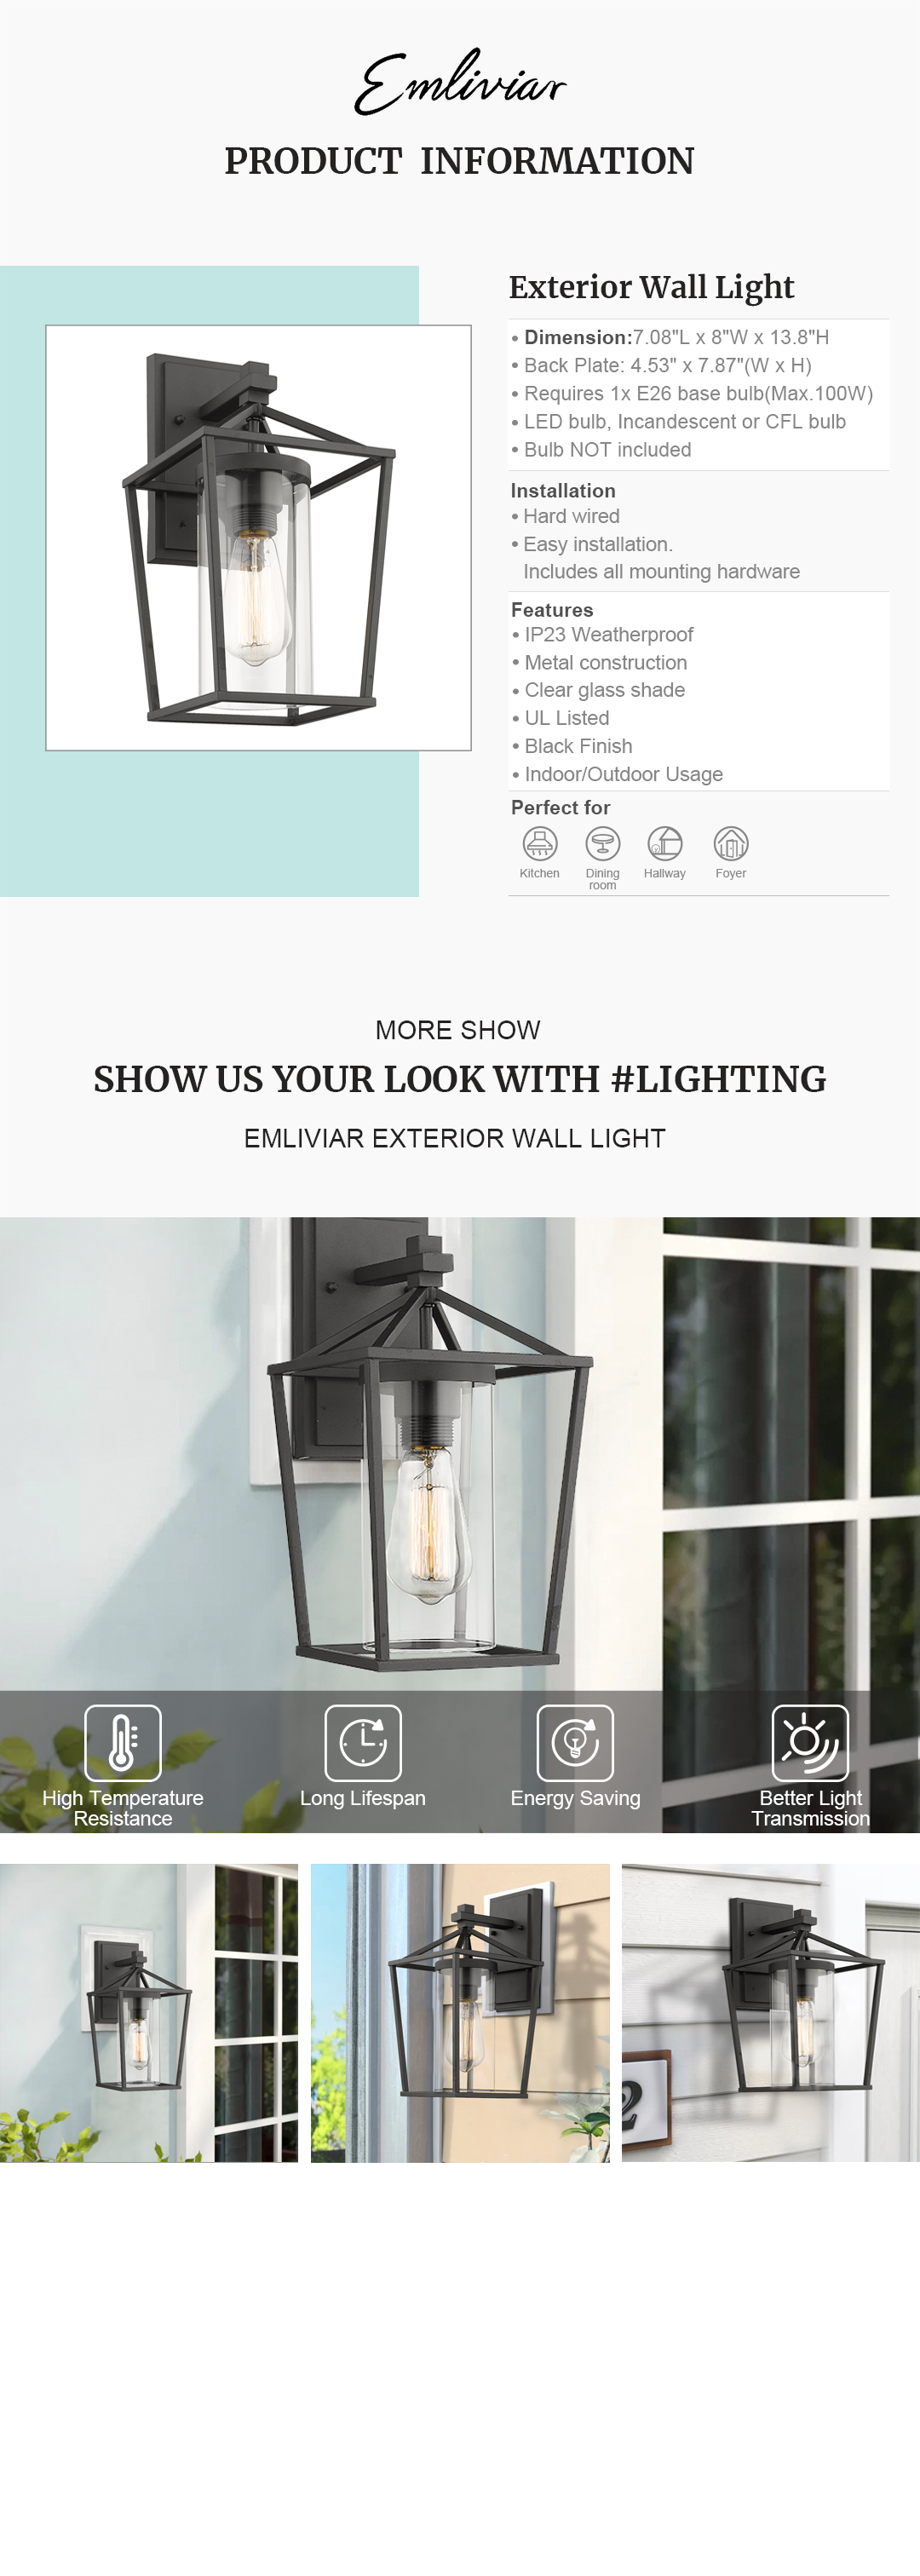 """Weather resistant and suitable for wet locations, this outdoor wall lantern features sturdy metal construction and clear glass shade Easy installation with open bottom to allow for easy bulb replacement. Includes all mounting hardware Hard wired. Requires 1x E26 base bulb(Max.100W). Bulb NOT included. Compatible with LED bulb, Incandescent or CFL bulb UL Listed with a one-year warranty. This outdoor wall light is perfect for your house, porch, garage, hallway and entryway. Dimension: 7.08"""" x 8"""" x 13.8""""(L x W x H); Back Plate: 4.53"""" x 7.87""""(W x H)"""